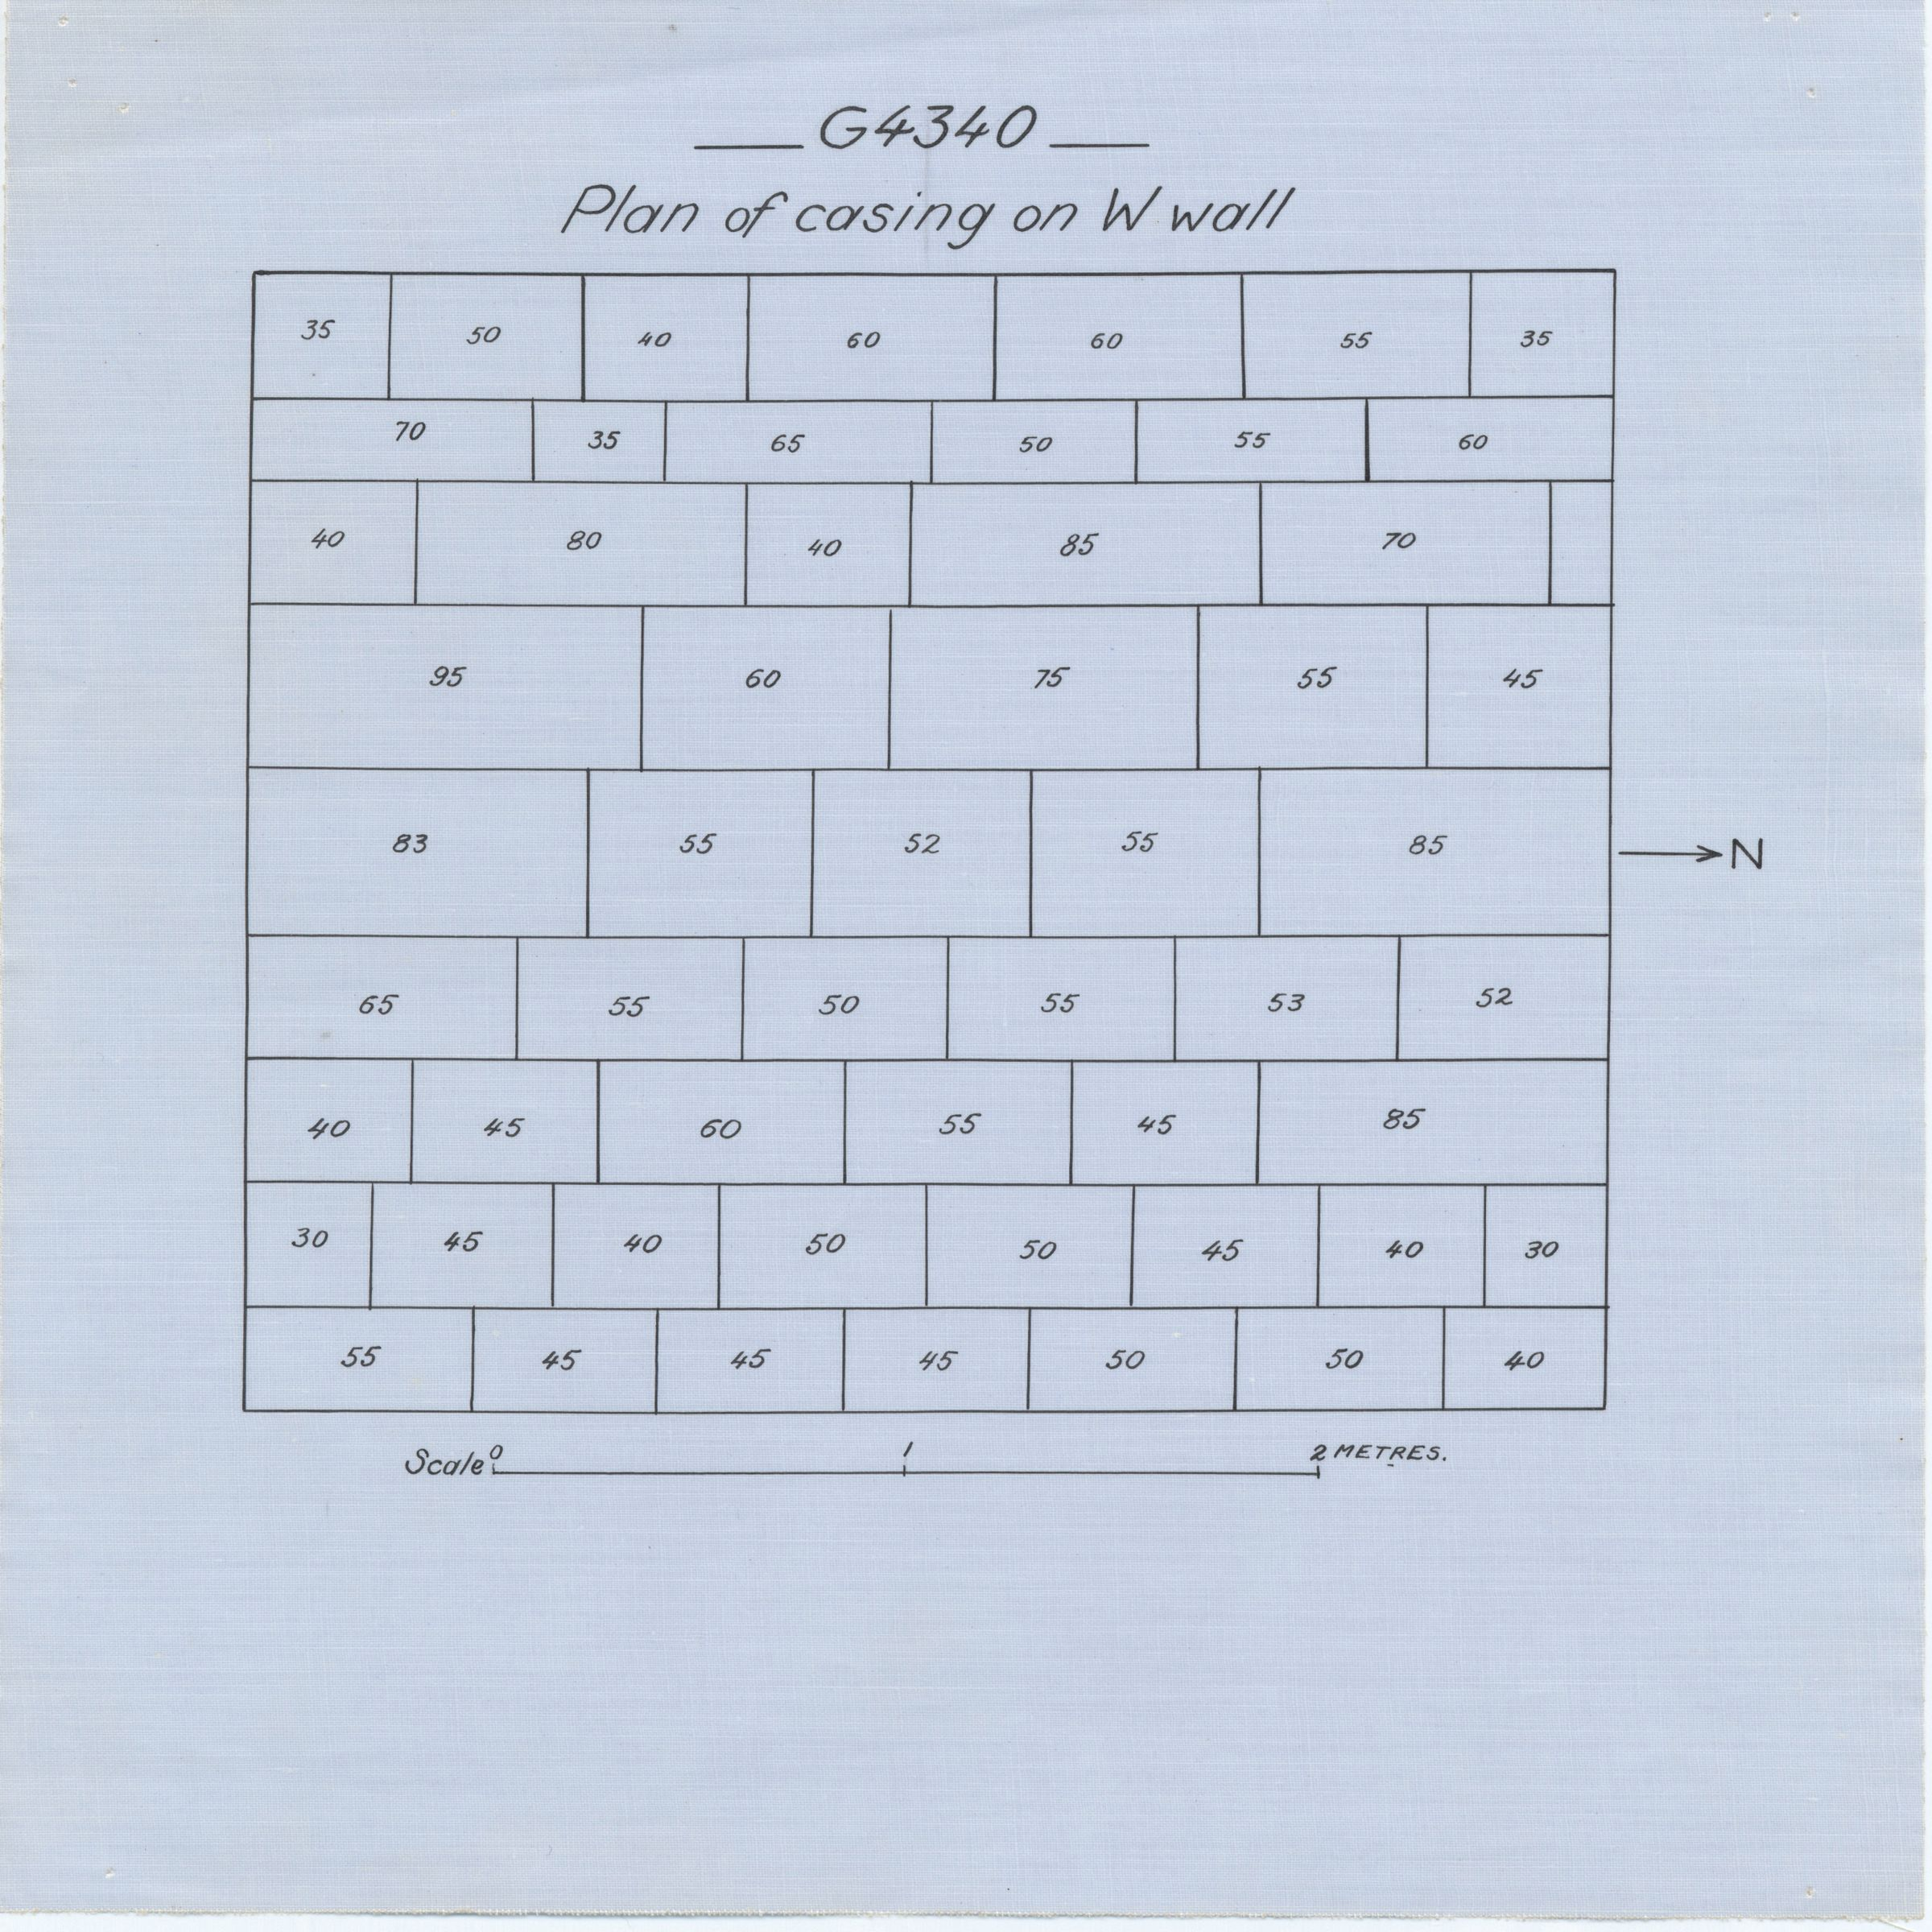 Maps and plans: G 4340, Shaft A, burial chamber, west wall casing